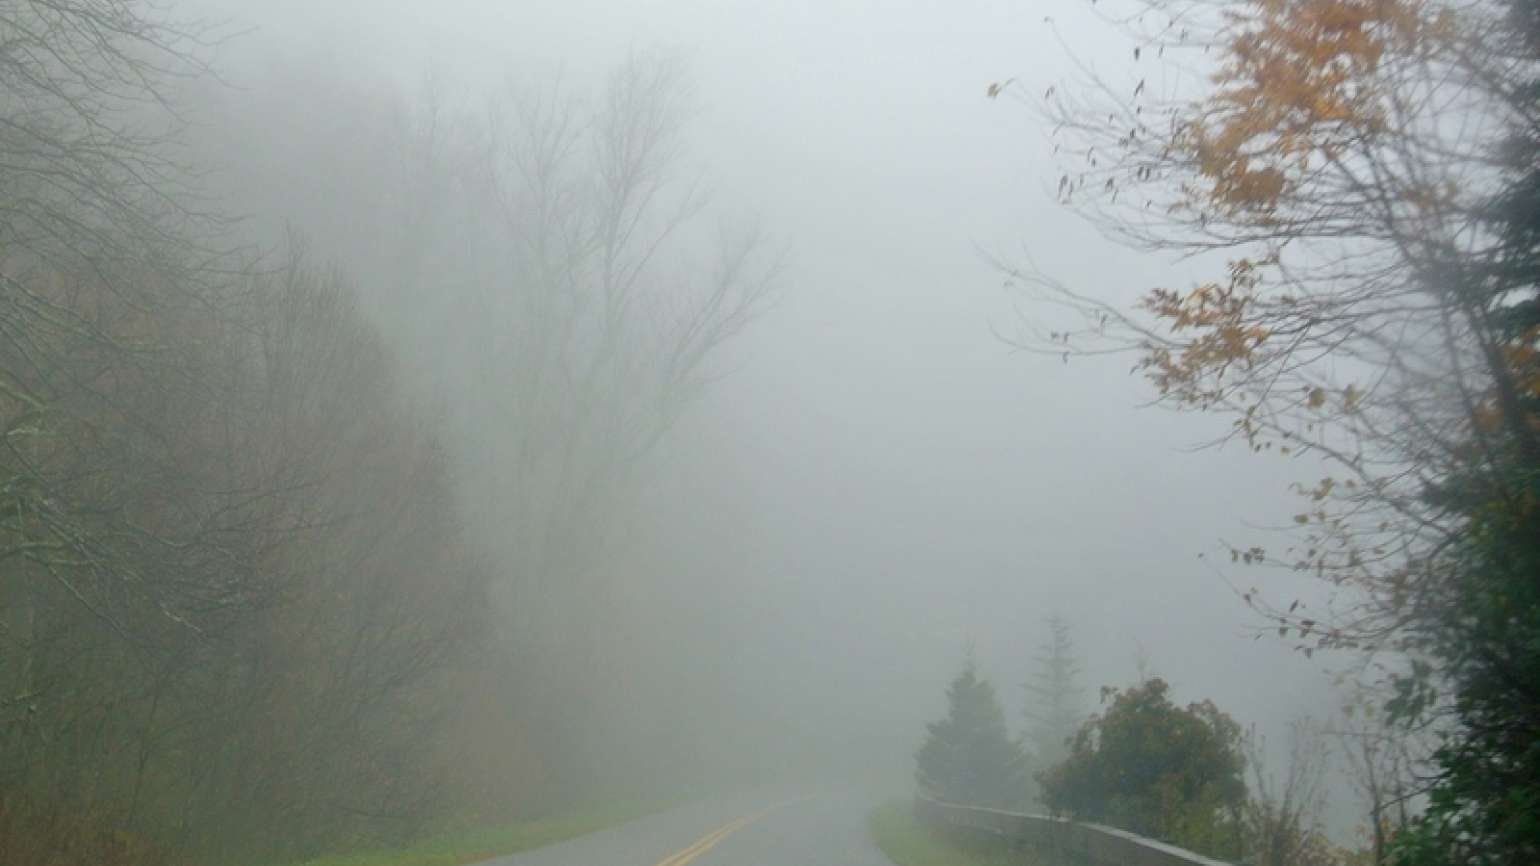 Driving through a fog of fear. Photo by Edie Melson.